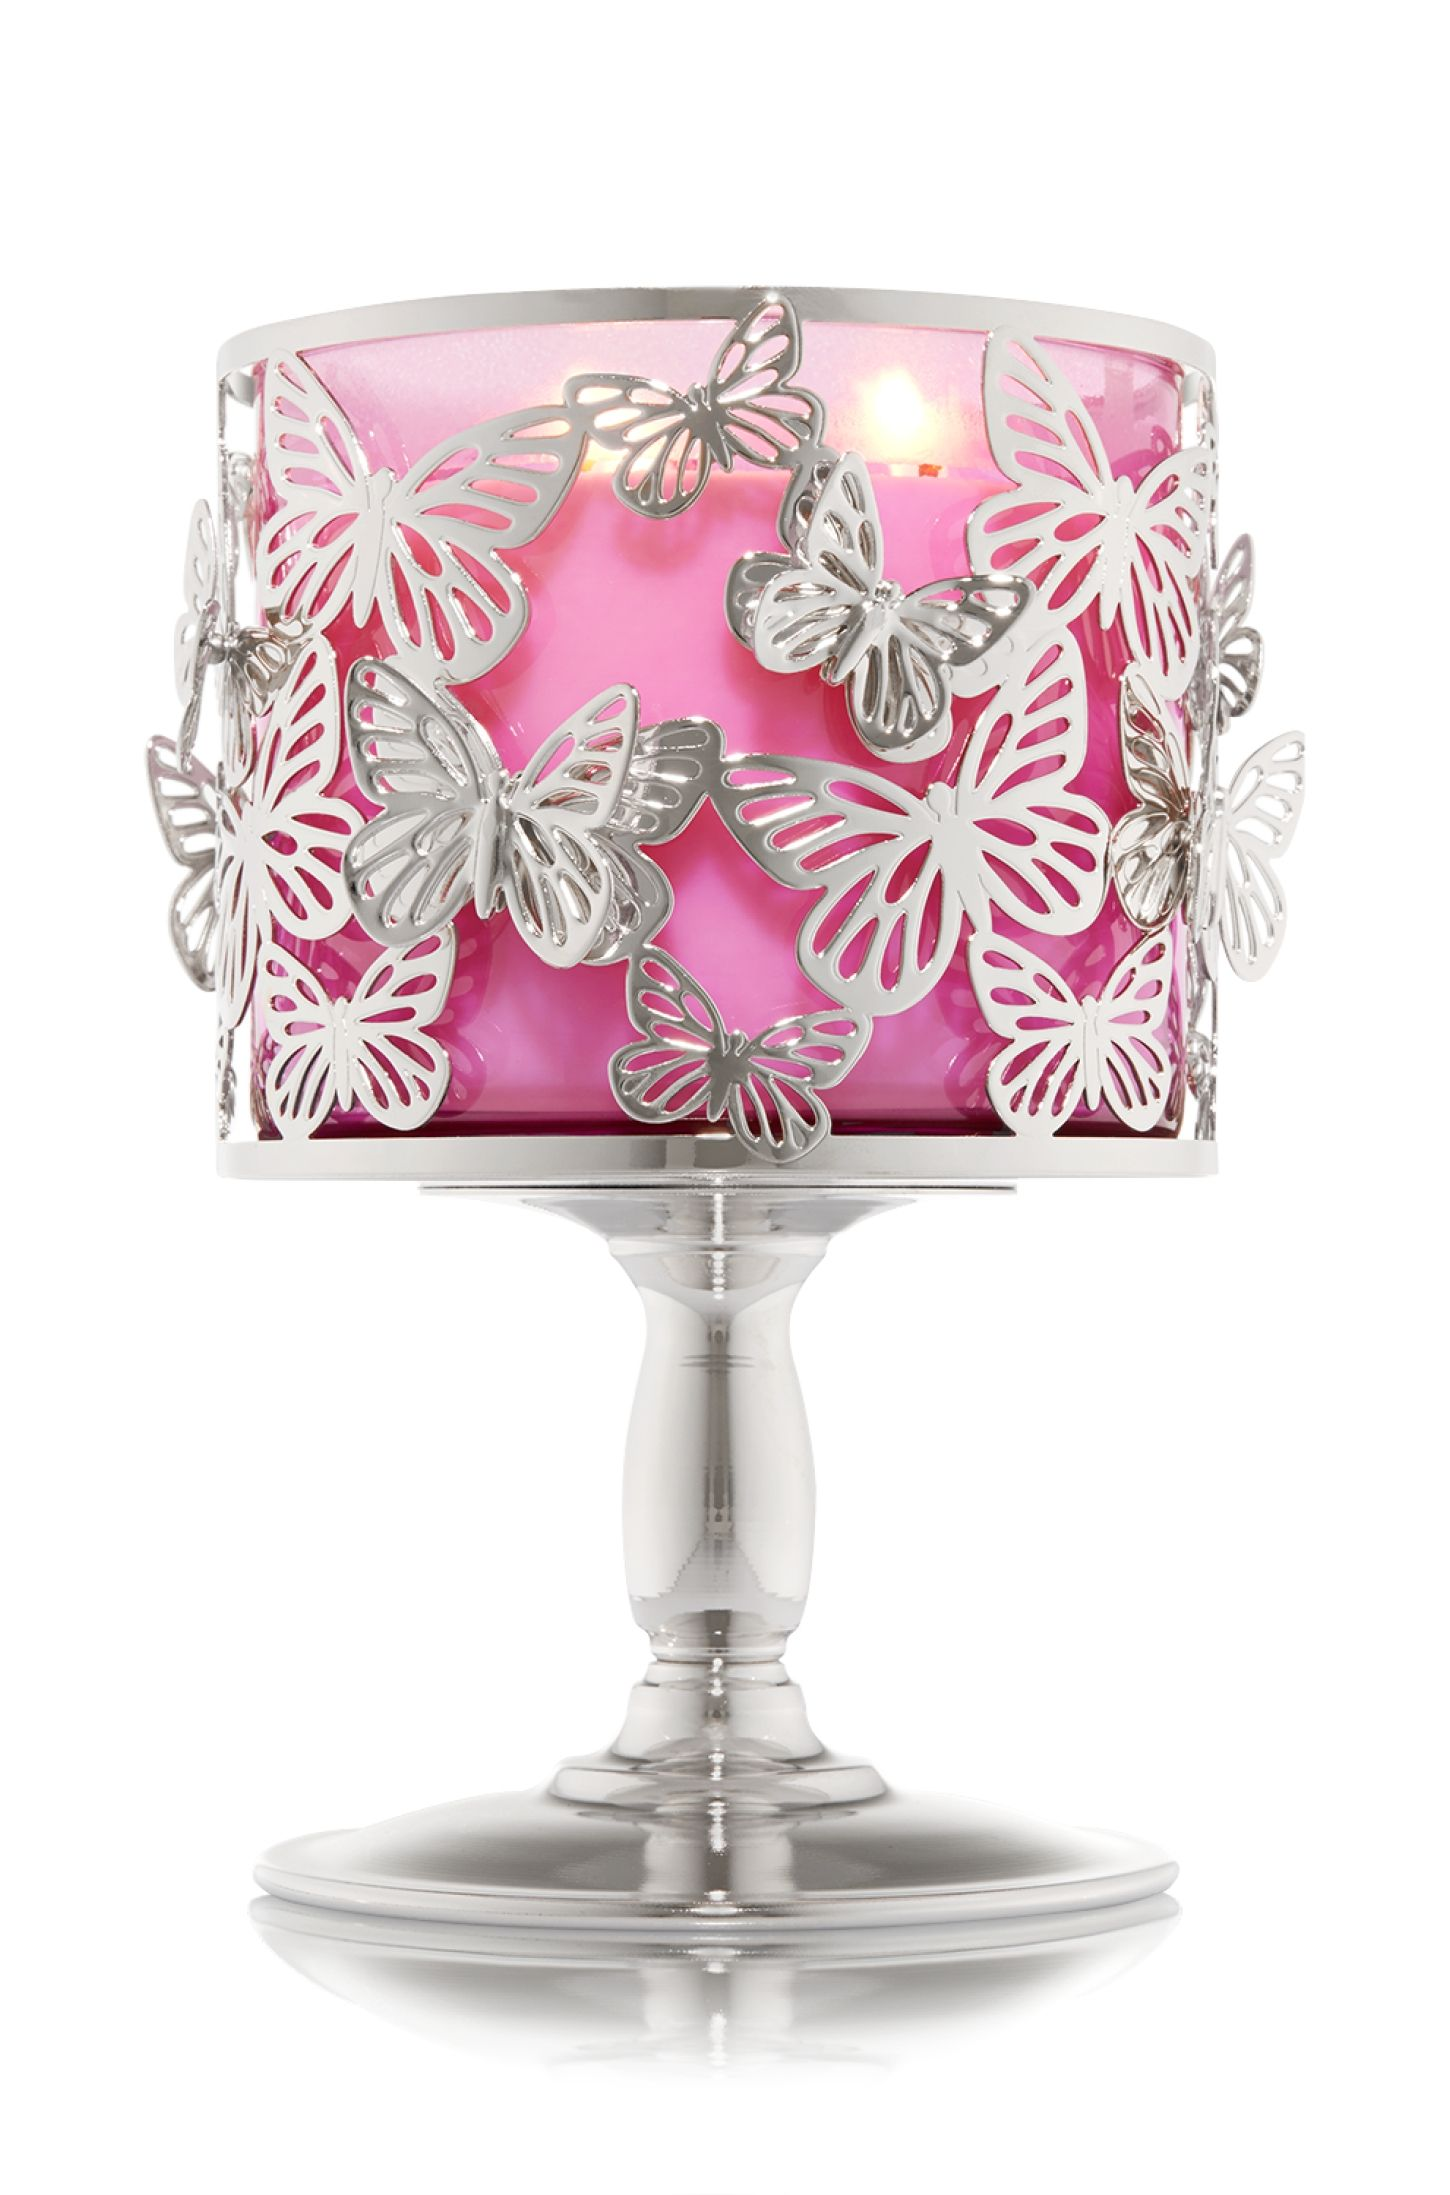 Bath /& Body Works 3 D Pink Butterfly 3 Wick Candle Magnet